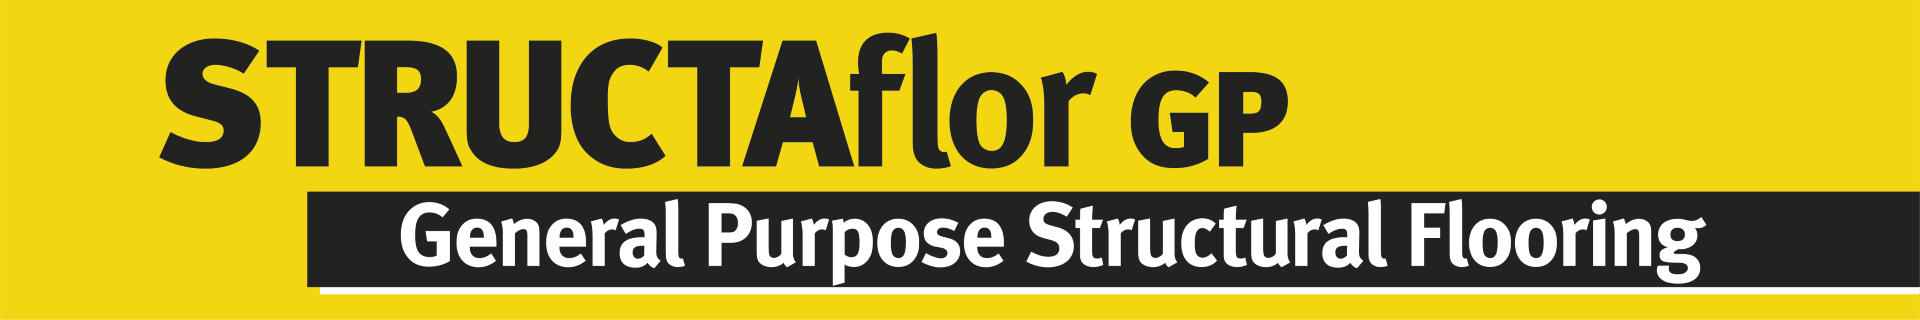 STRUCTAflor General Purpose